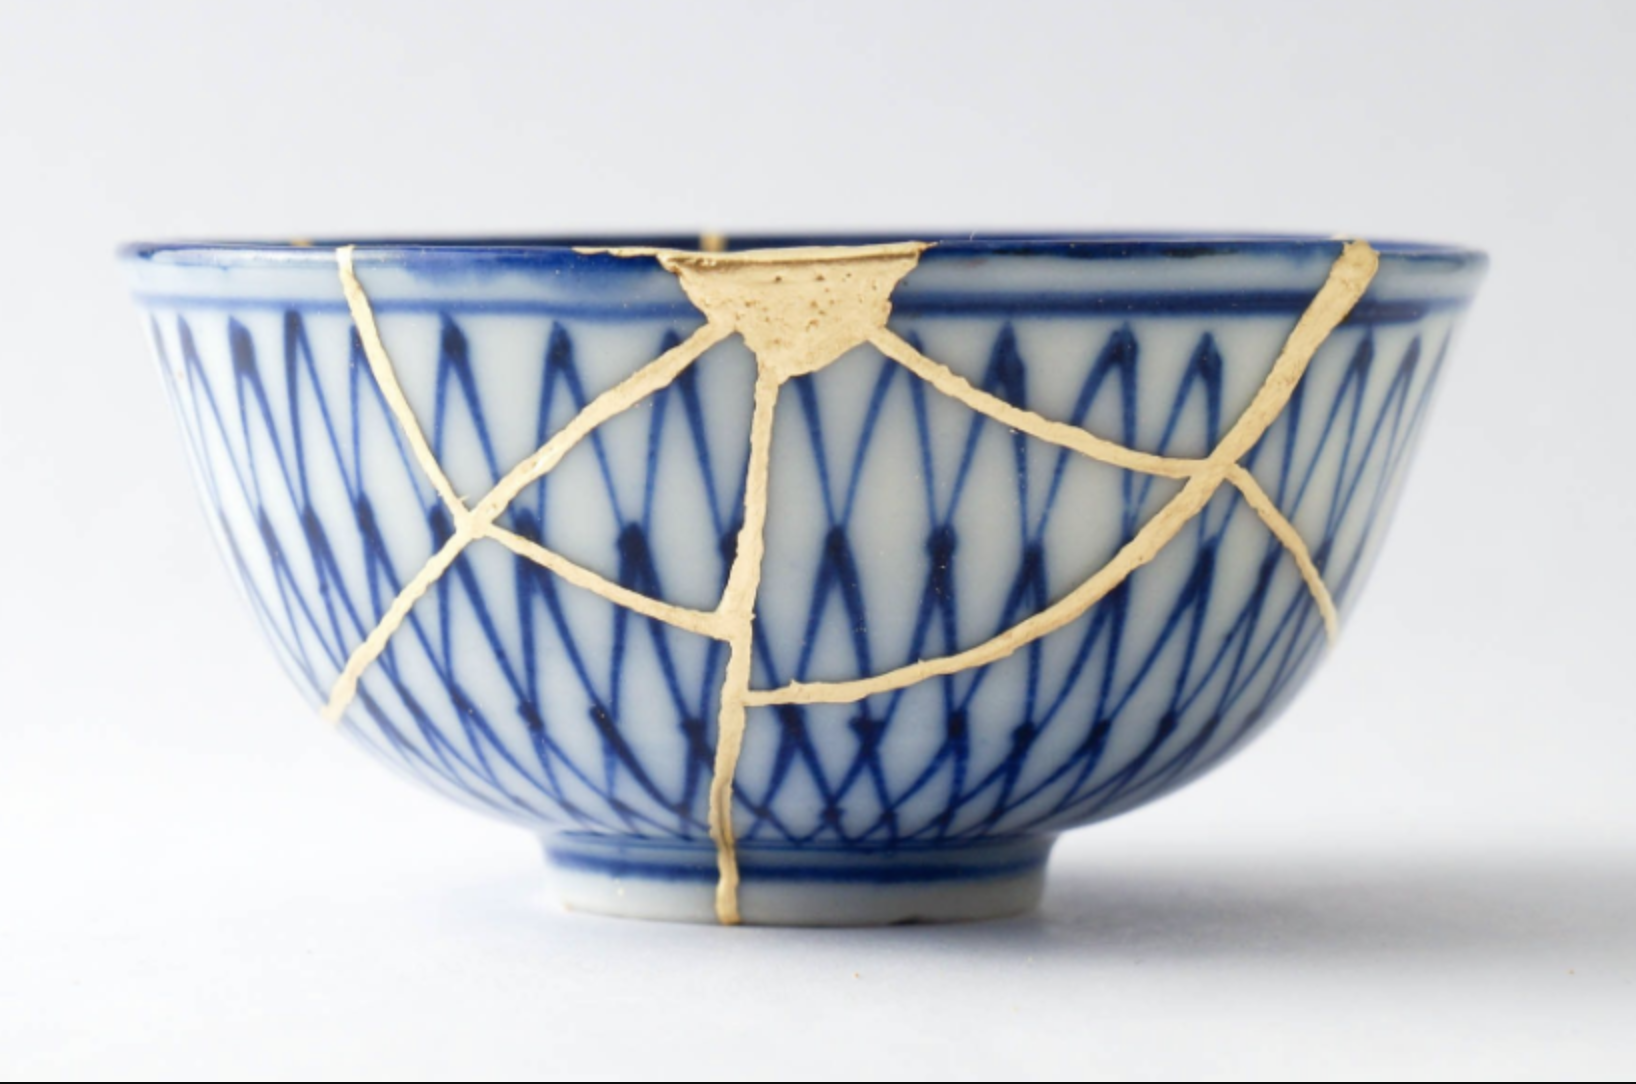 cup depicting a Japanese ceramic technique, Kintsugi